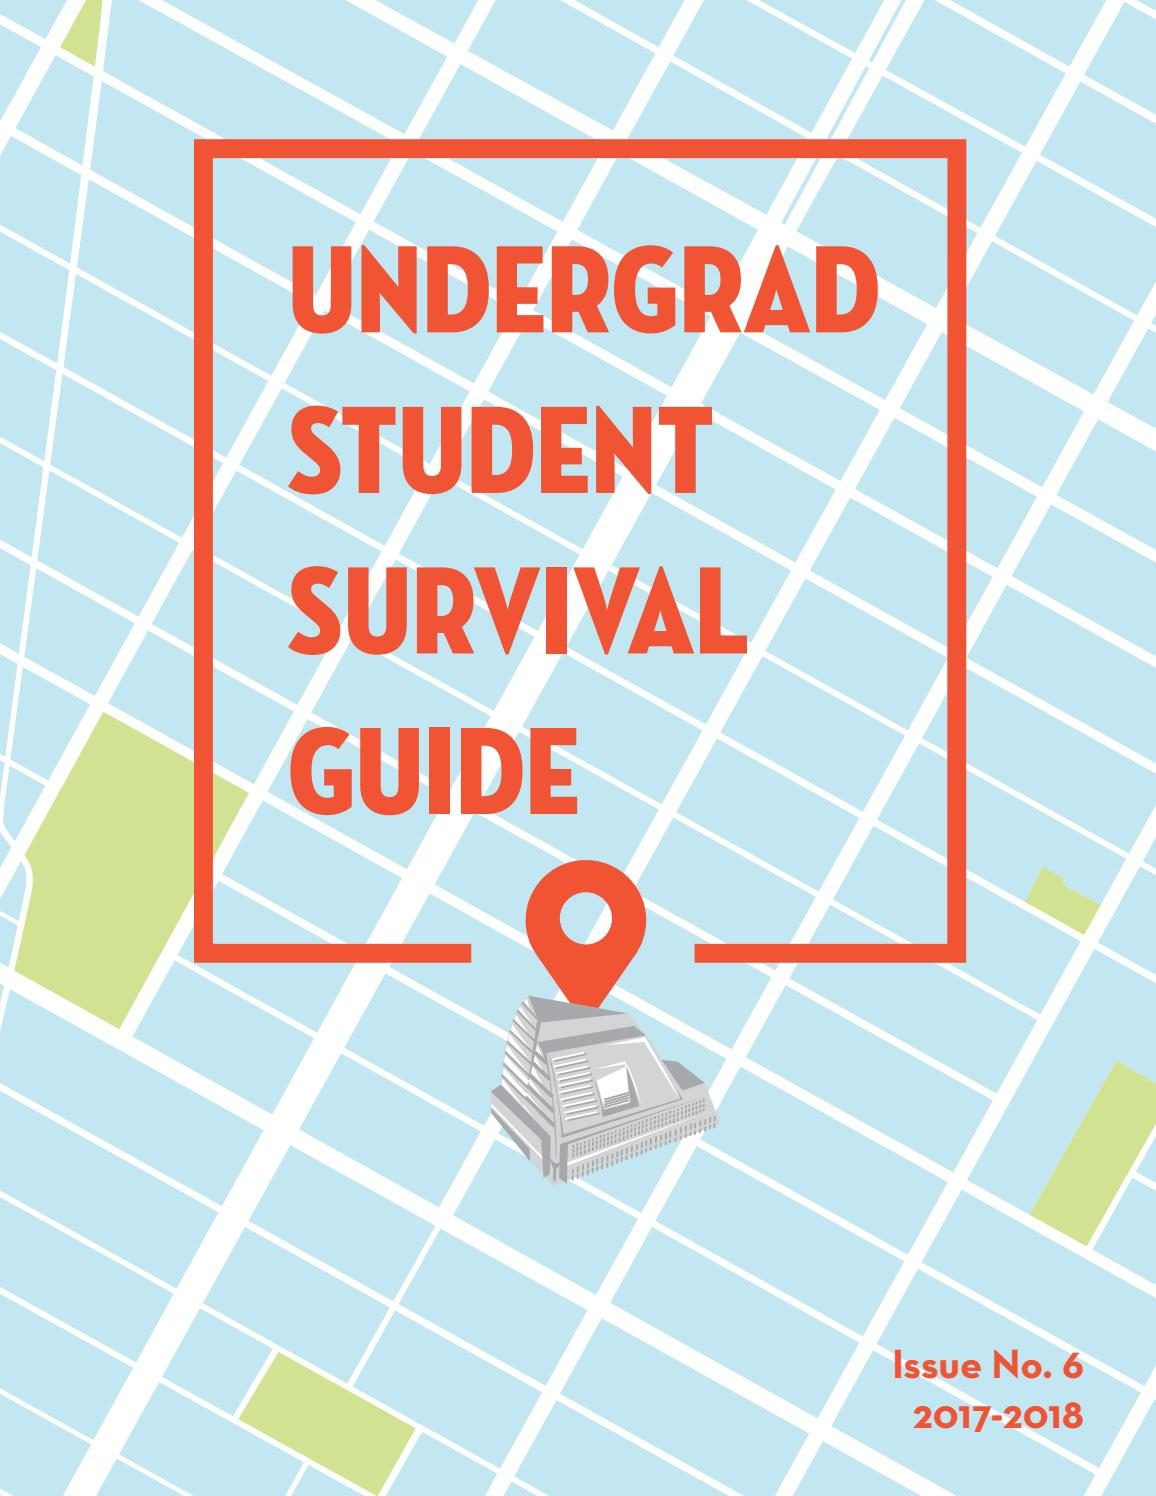 Baruch Undergrad Student Survival Guide 17-18 by USG Baruch - issuu